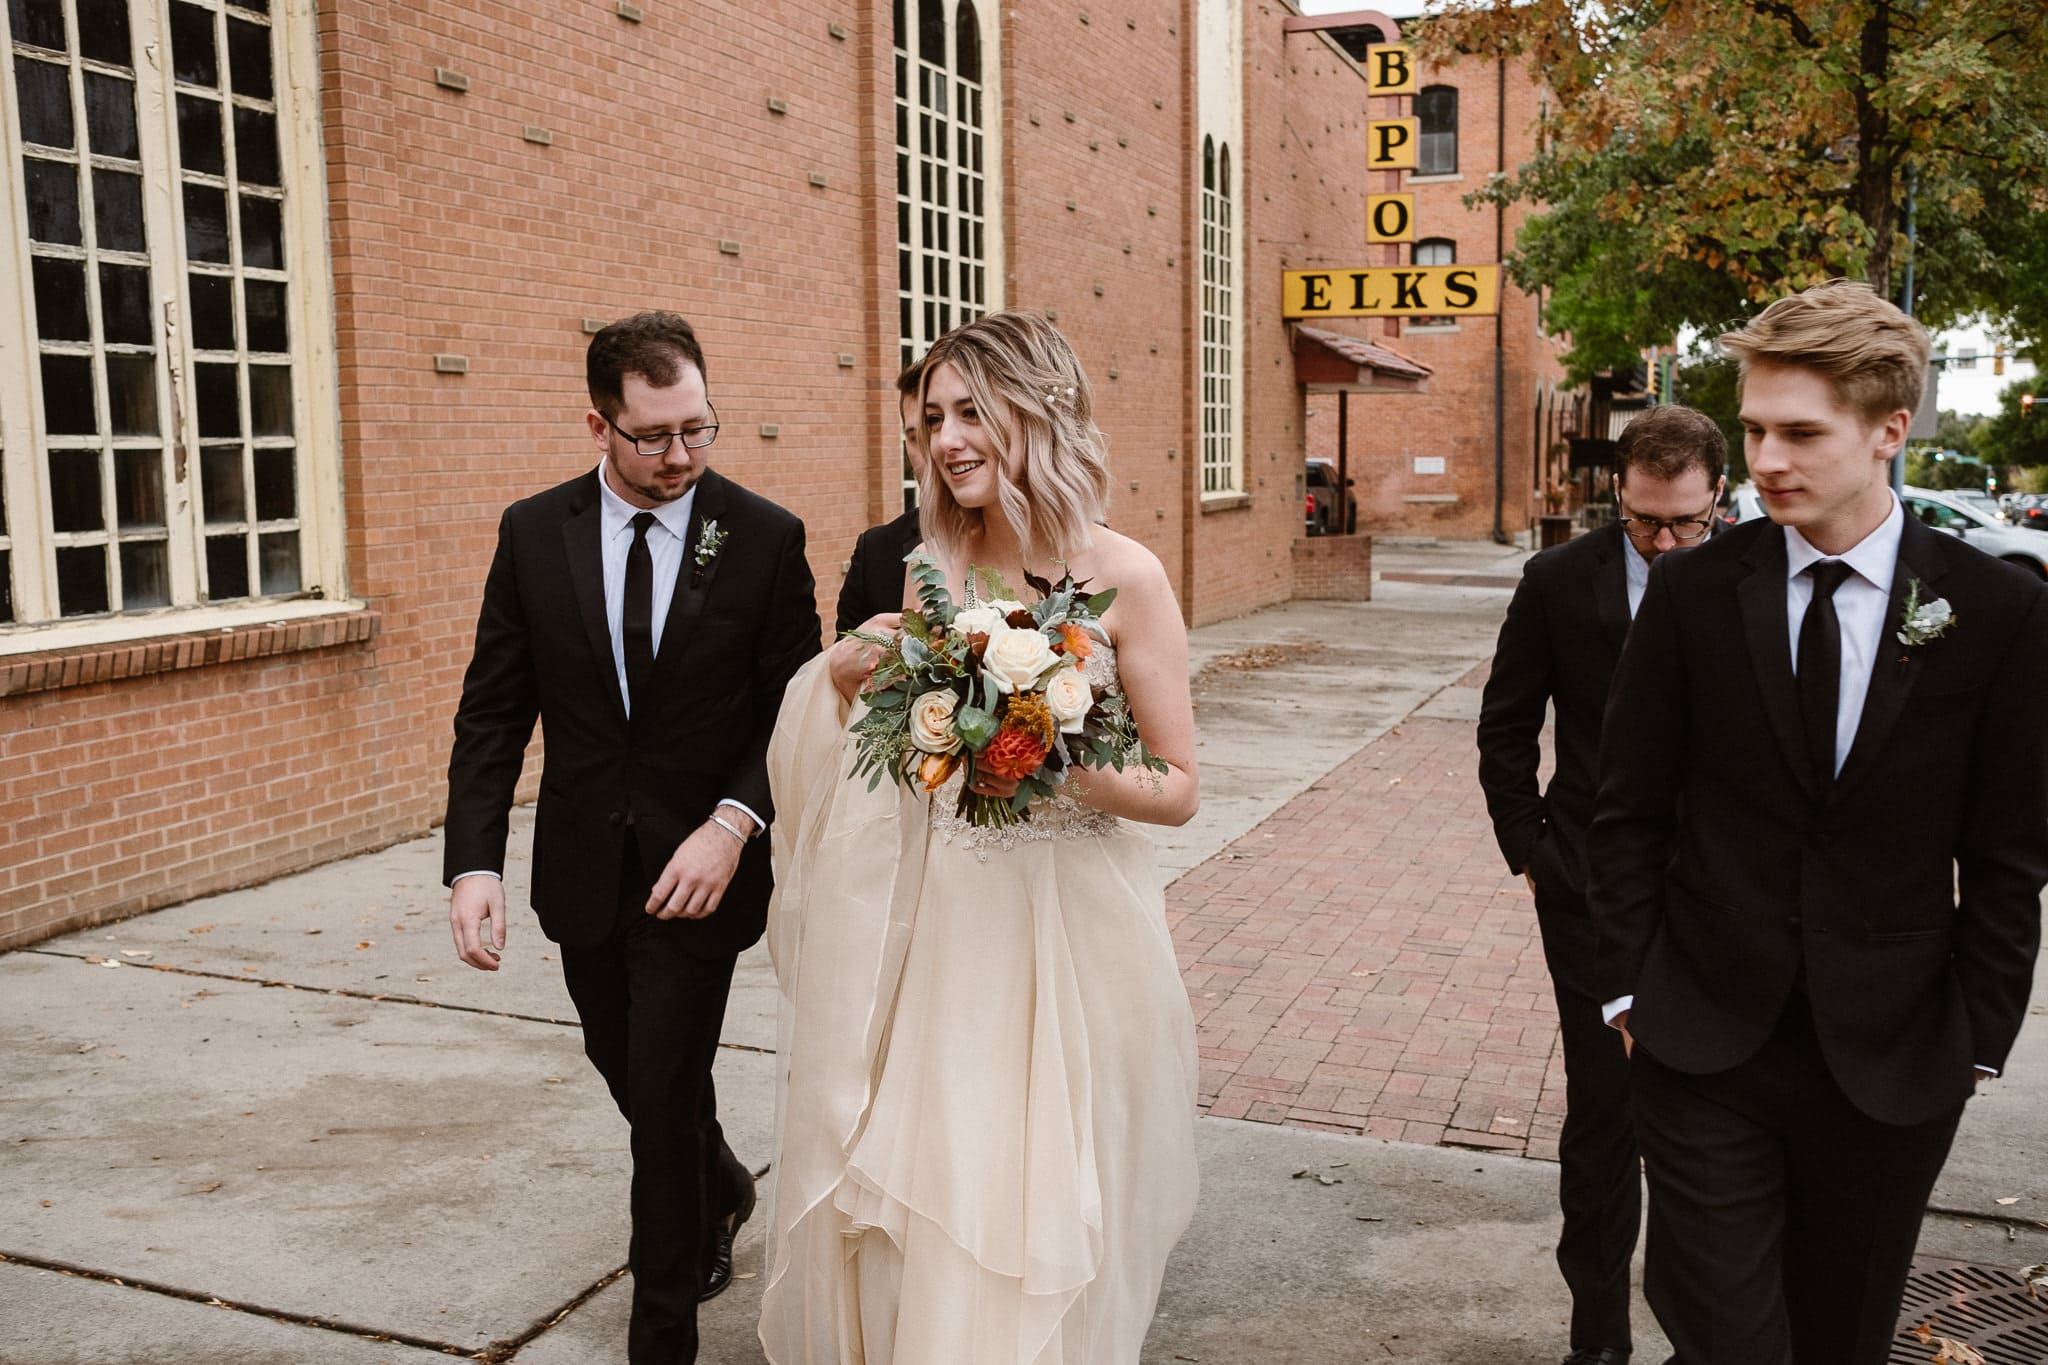 St Vrain Wedding Photographer | Longmont Wedding Photographer | Colorado Winter Wedding Photographer, Colorado industrial chic wedding, bride and groom with wedding party